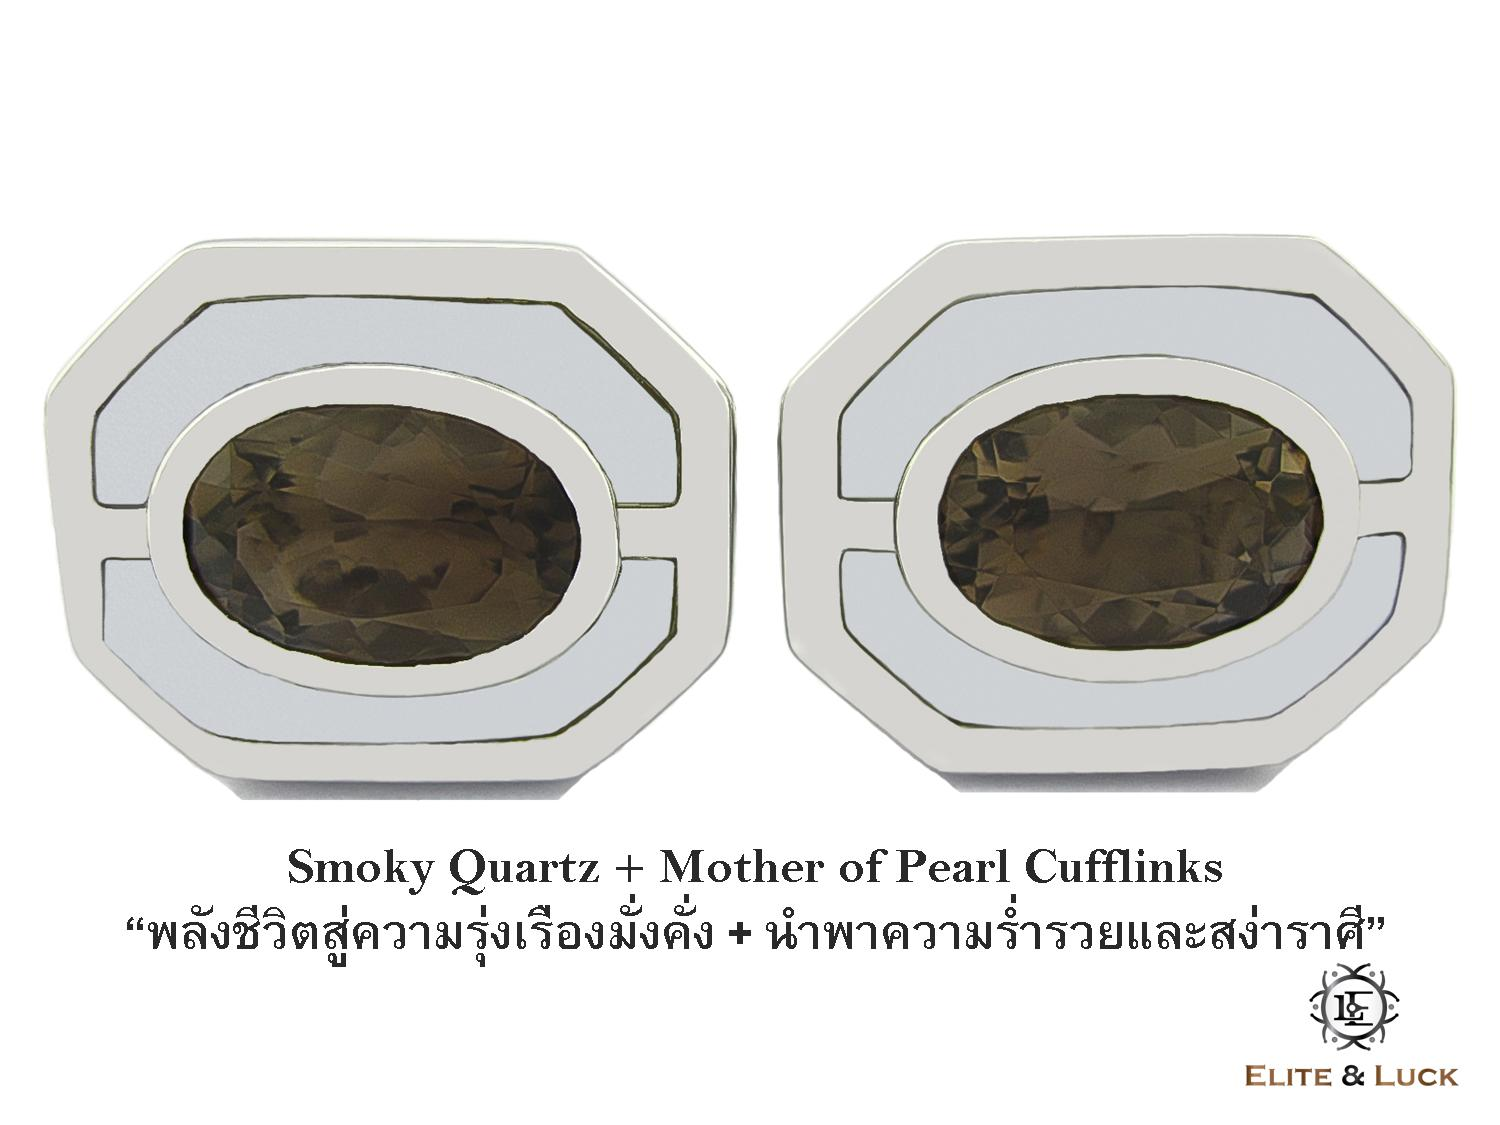 Smoky Quartz + Mother of Pearl Sterling Silver Cufflinks สี Rhodium รุ่น Charming